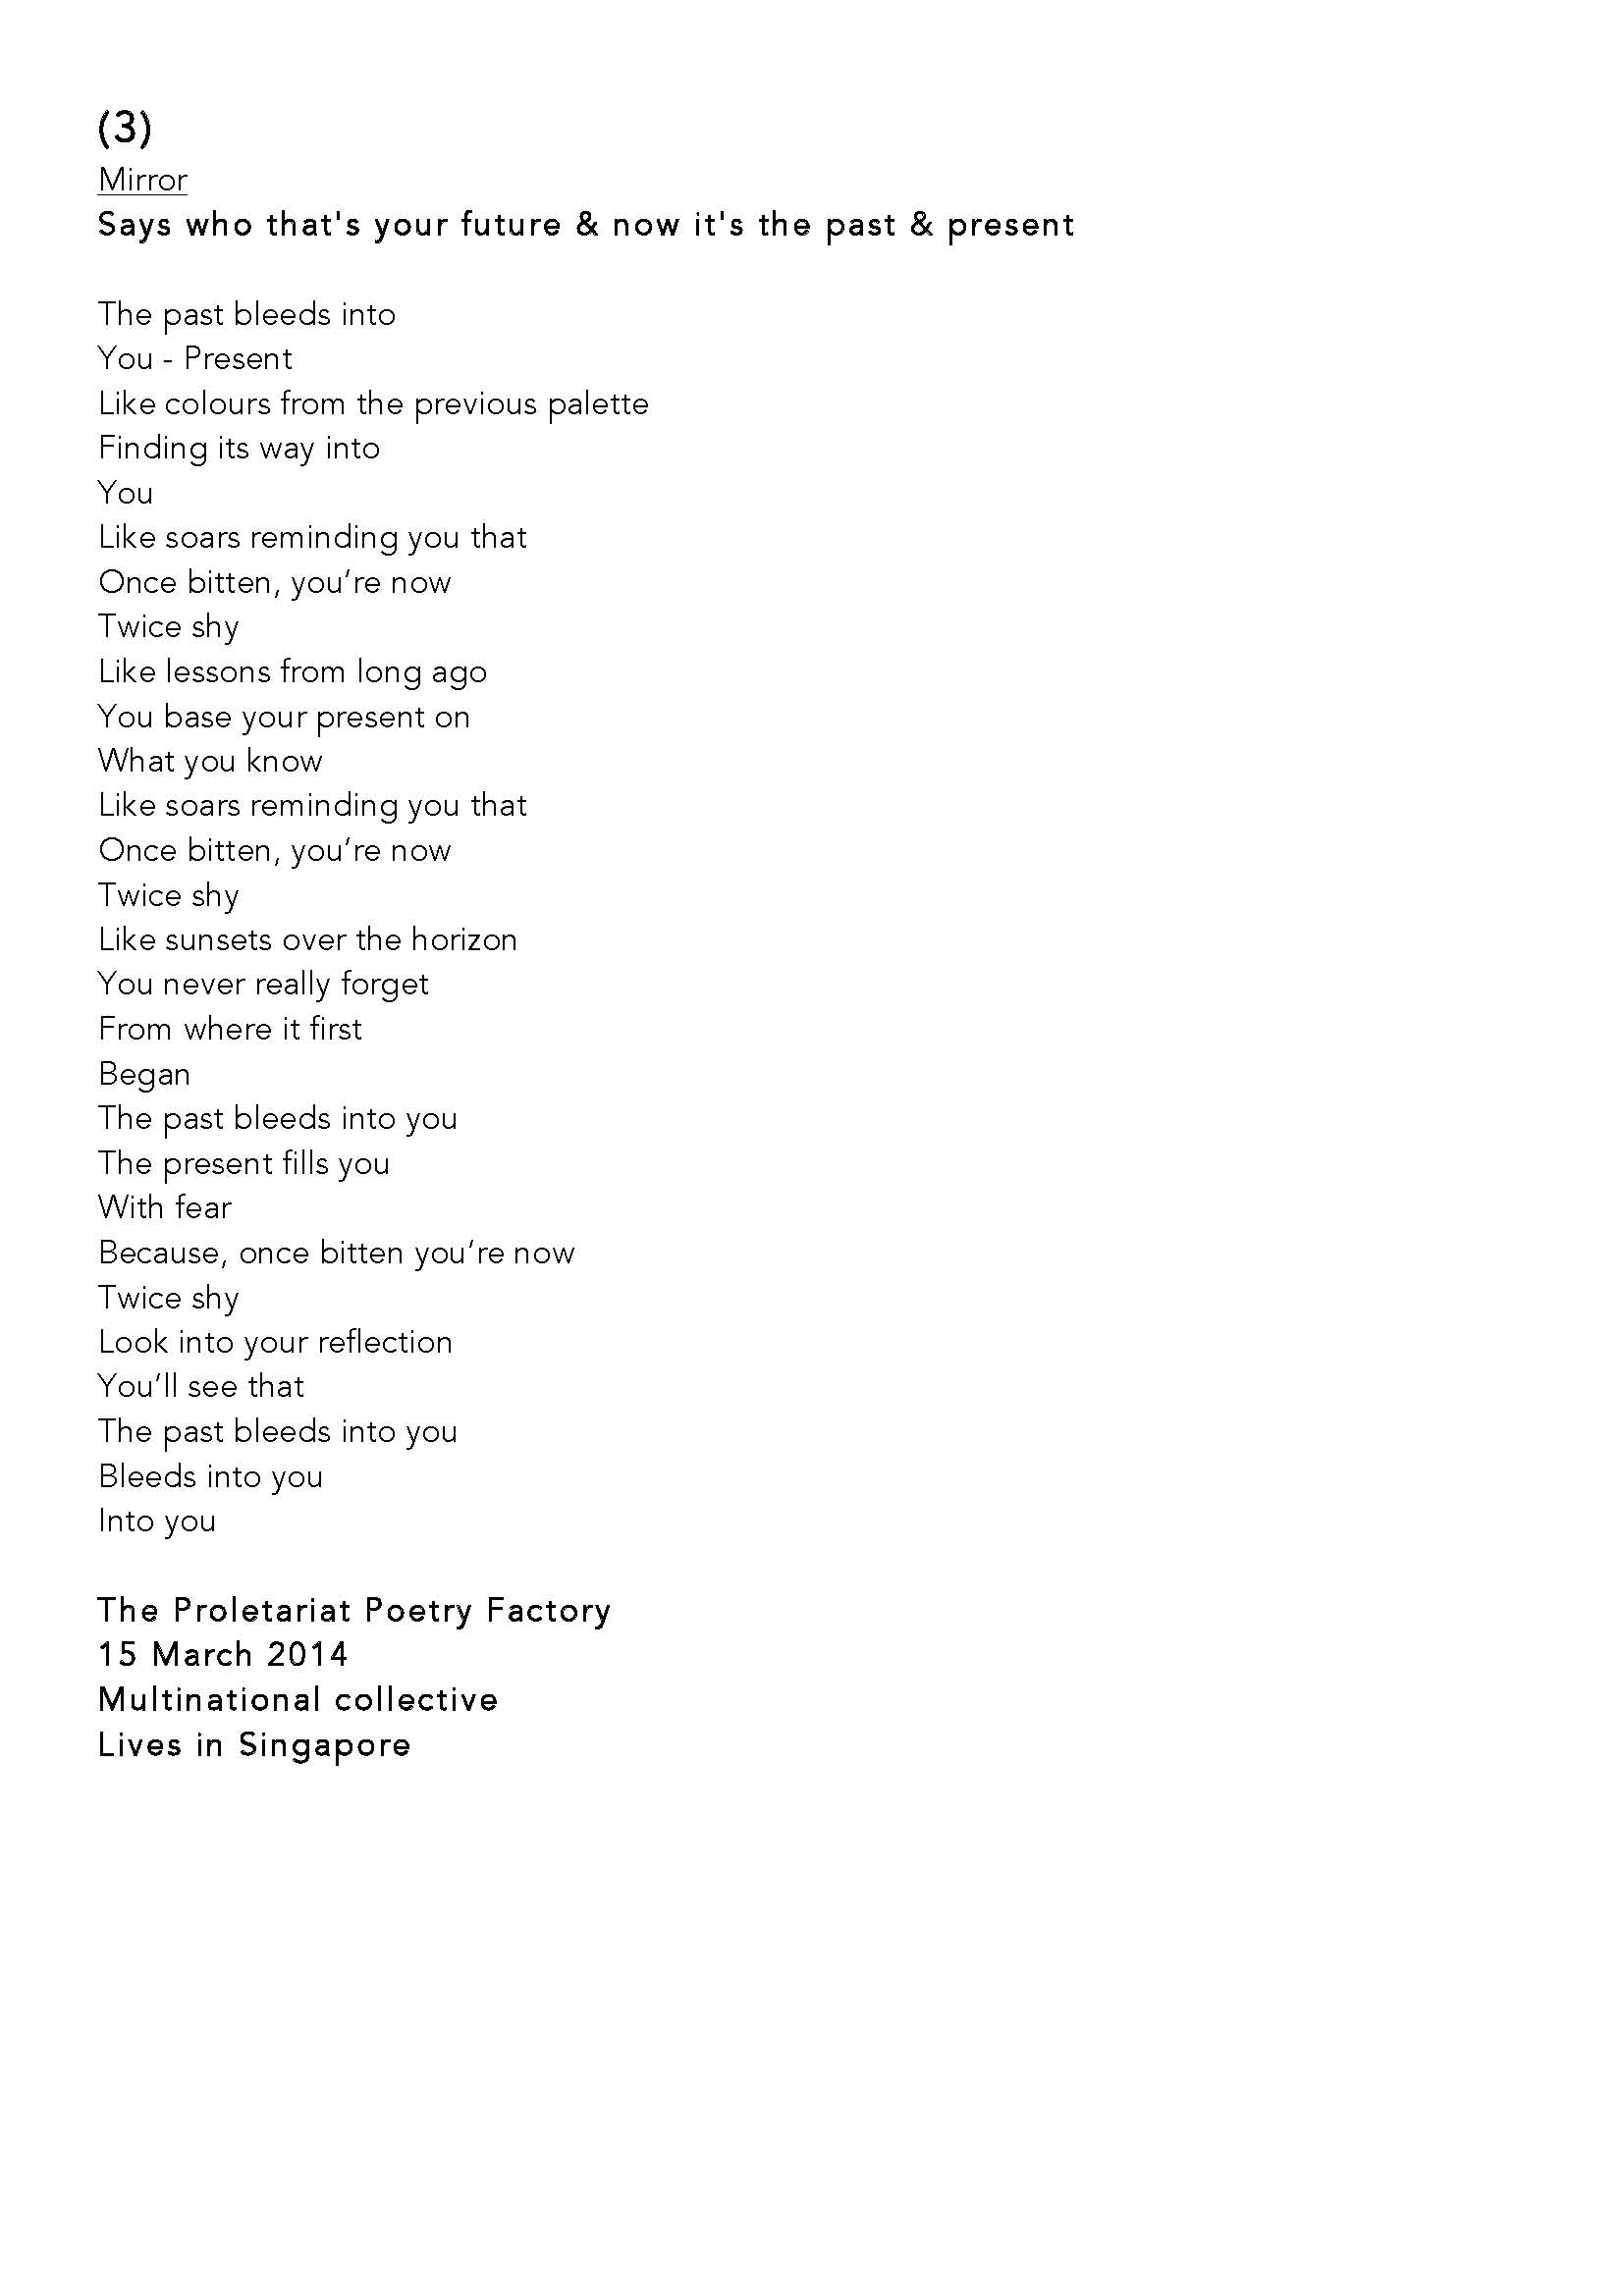 Poetry Collection - Everyone can Poetry_March 2014_Page_3.jpg